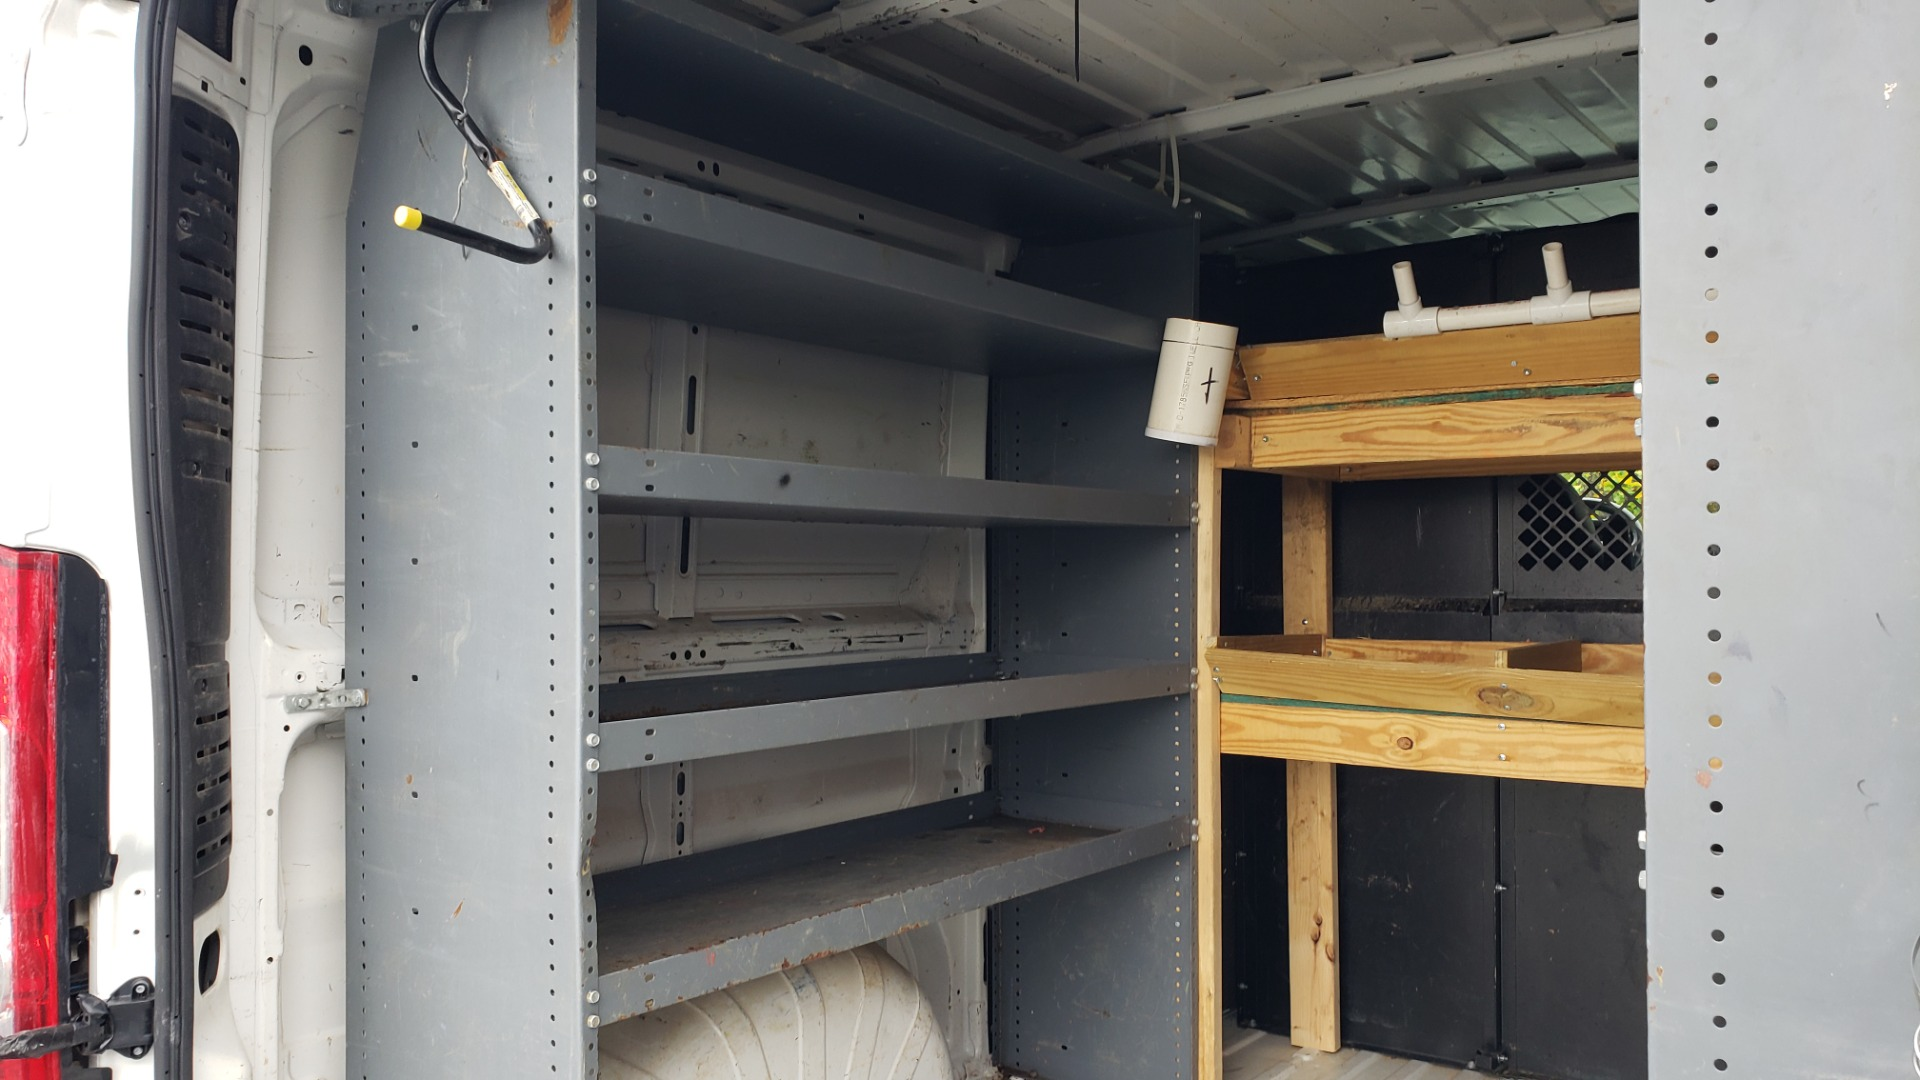 Used 2015 Ram PROMASTER CARGO VAN 136-INCH WB / LOW ROOF / LADDER RACK / INSIDE RACKS for sale $16,995 at Formula Imports in Charlotte NC 28227 56